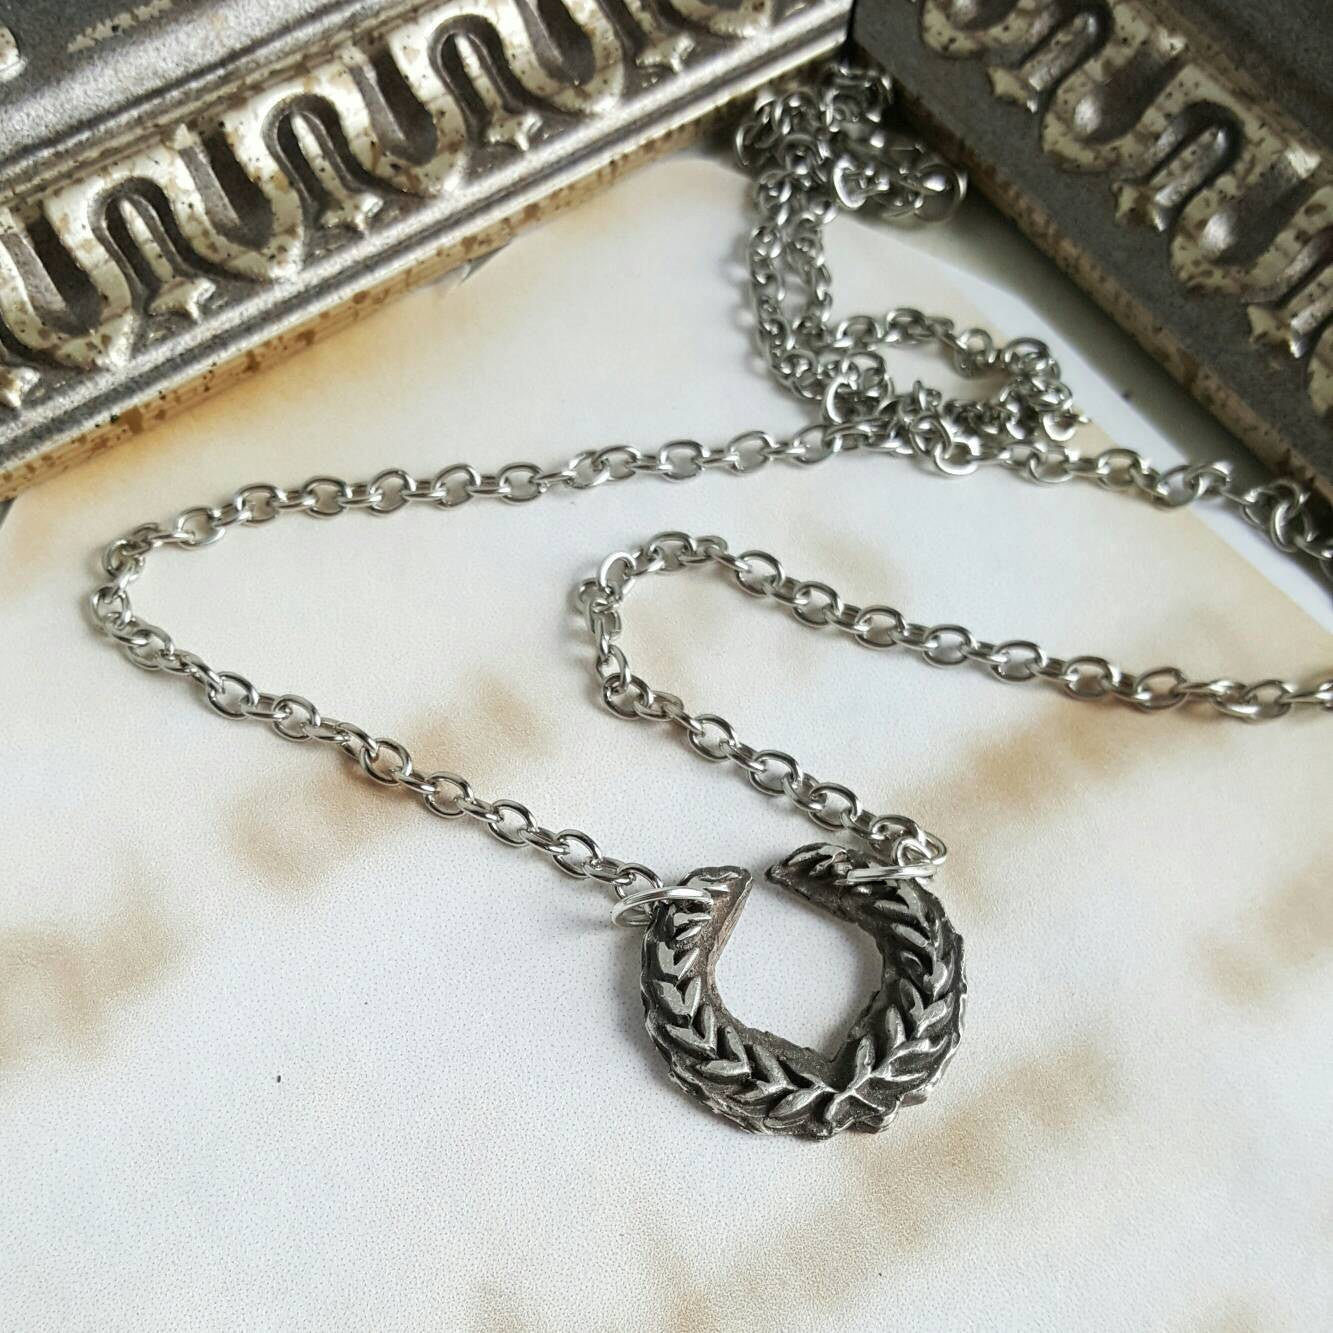 Laurel Crown Necklace - Sterling Silver Necklace - Bridesmaid Gift - Ren Faire - 925 Silver Jewelry - Roman Jewelry - Greek Goddess Cosplay - Handmade Jewelry - Ren Faire - DRAVYNMOOR